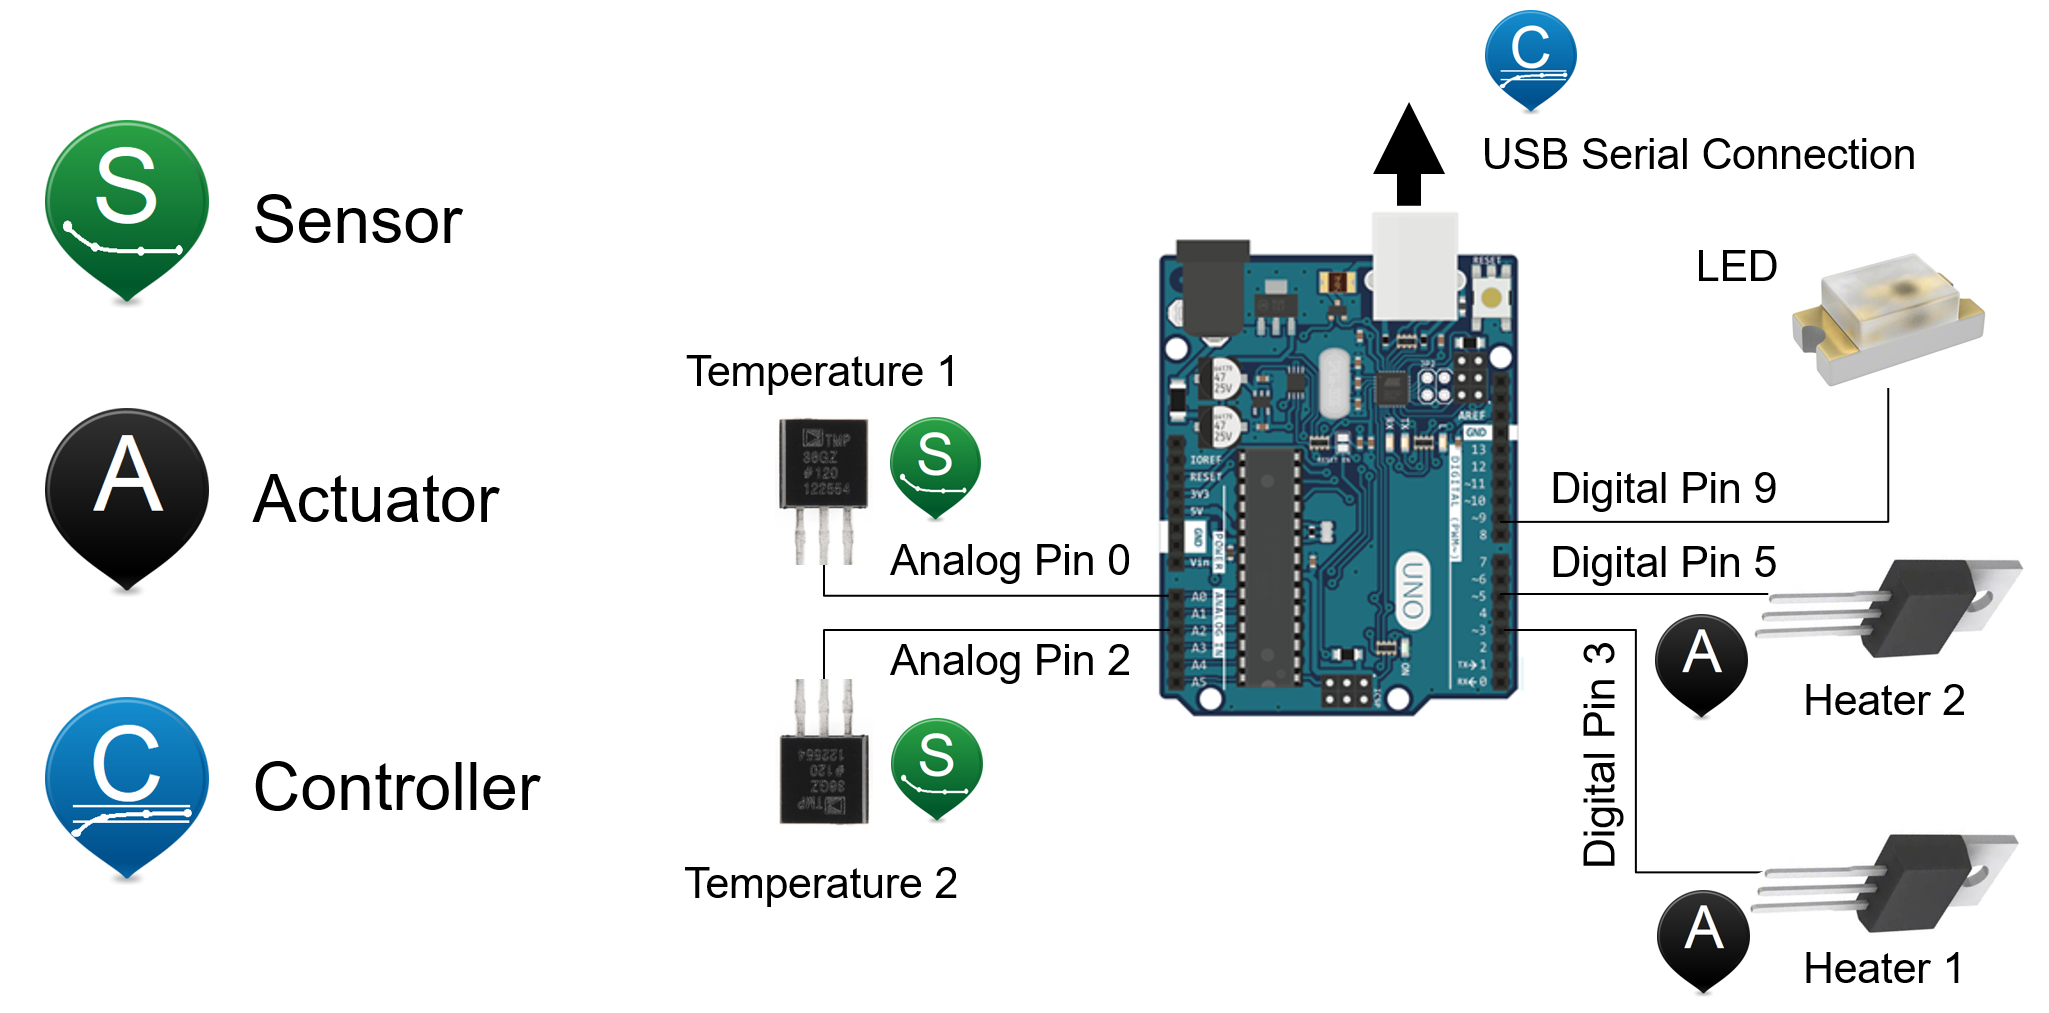 Temperature Control Lab Dynamics And Is There Anyway I Can Model This Simple Circuit In Matlab Download Files